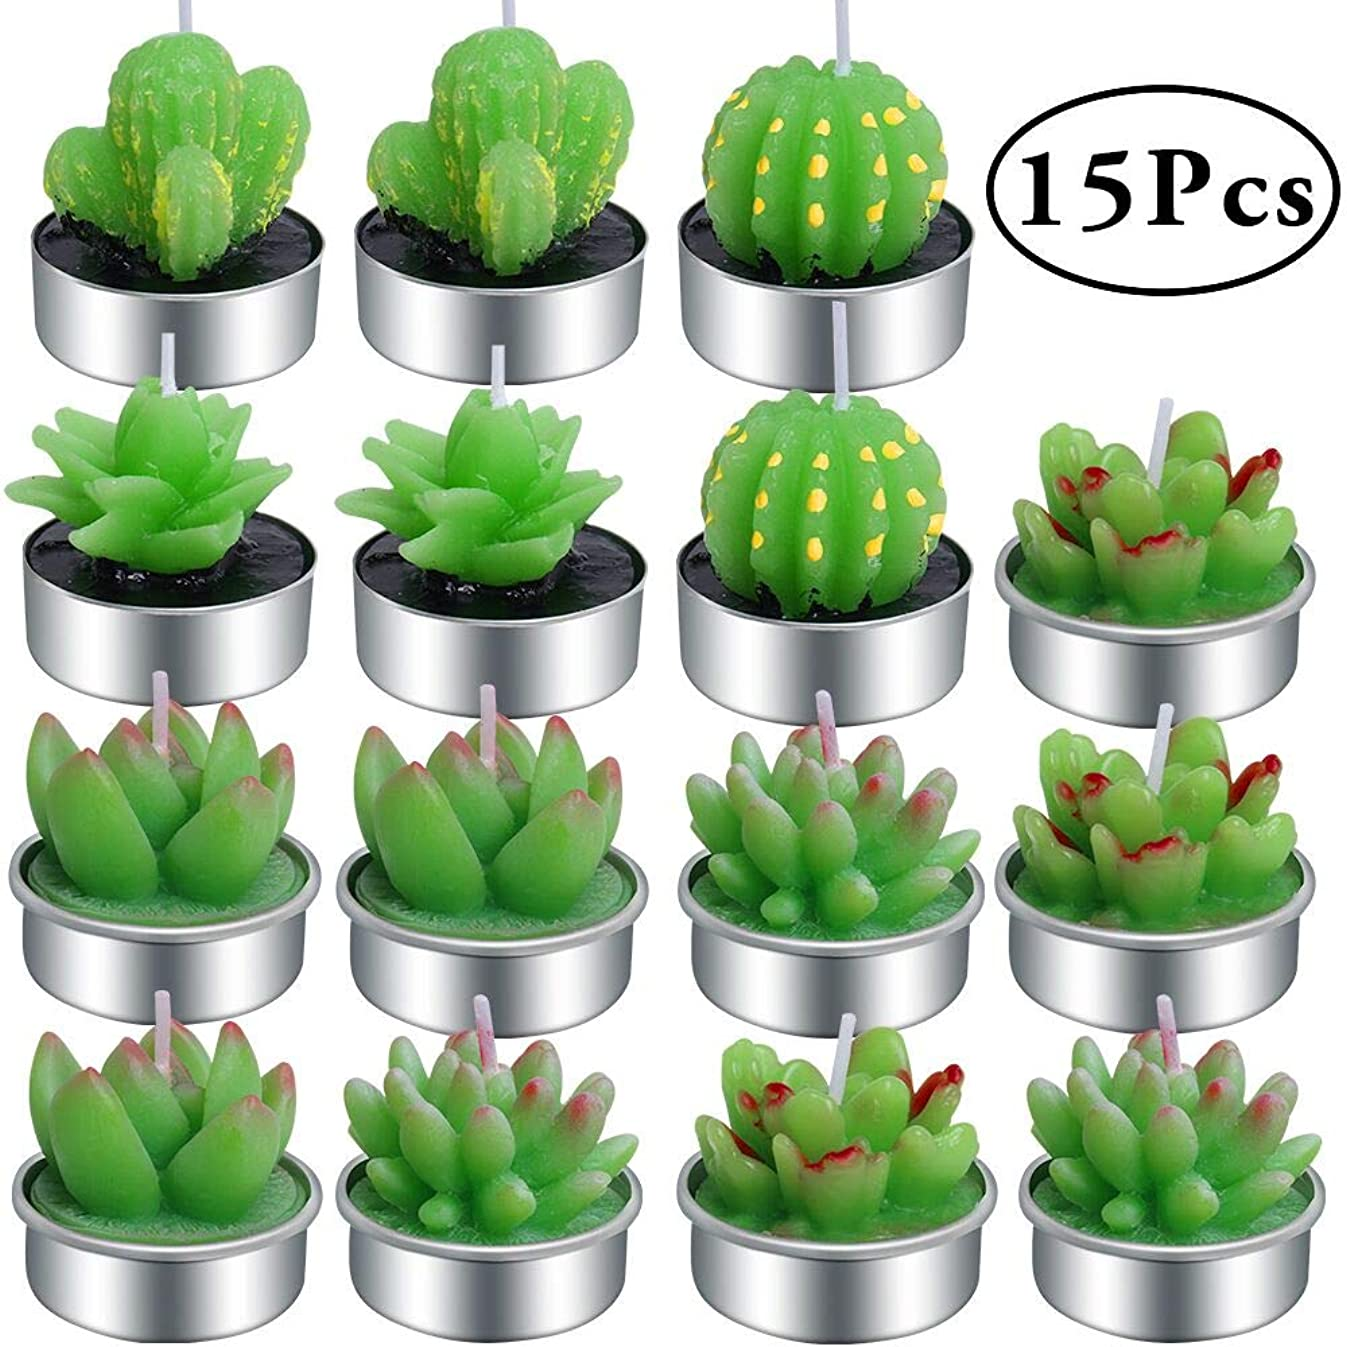 Outee 15 Pcs Cactus Tealight Candles Handmade Delicate Succulent Cactus Candles Flameless Aromatherapy 6 Designs for Birthday Party Wedding Spa Home Decoration